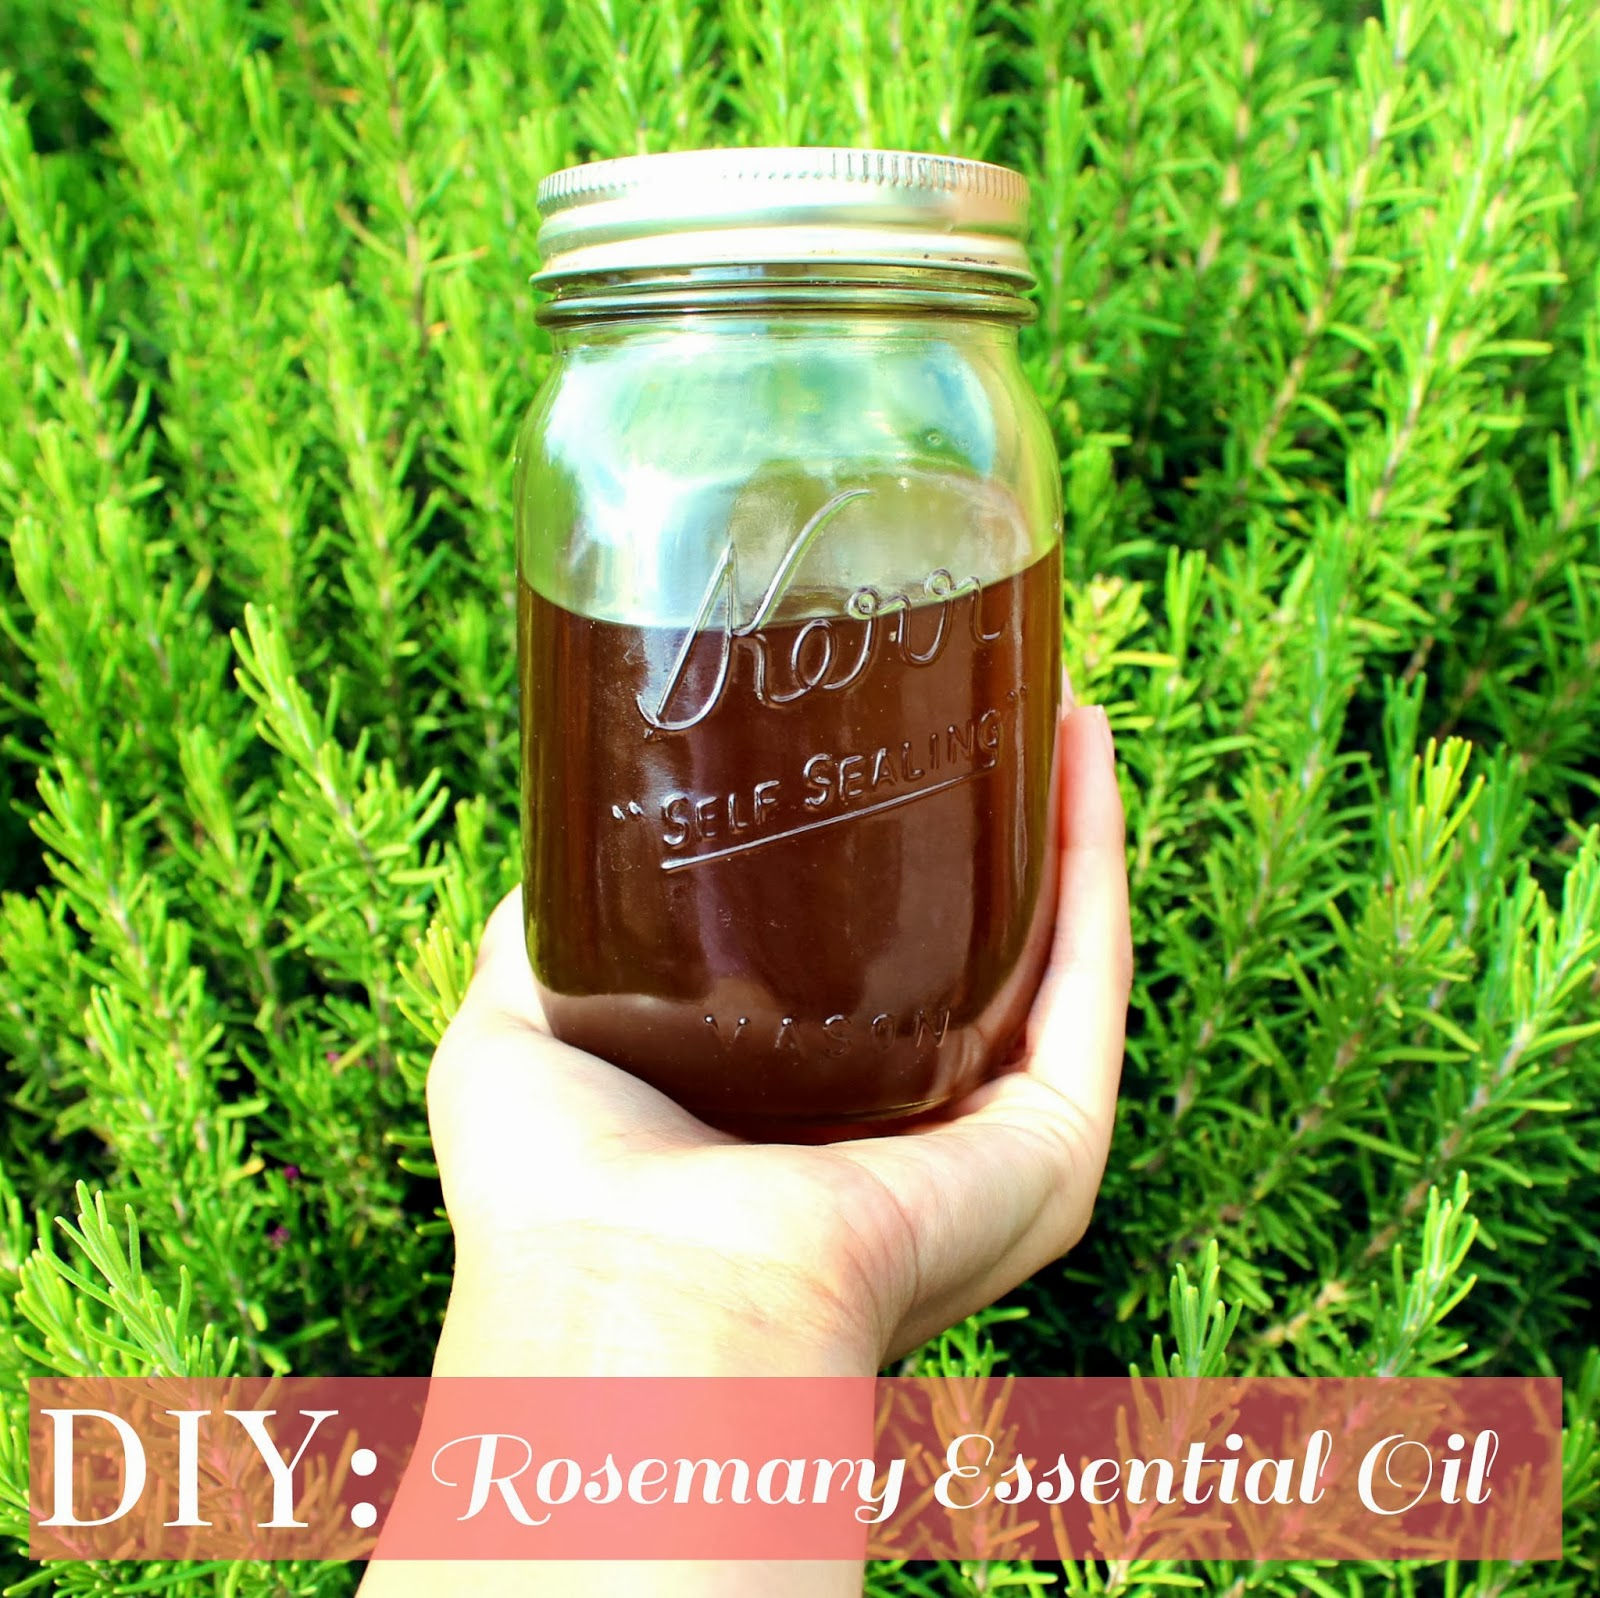 DIY: Rosemary Essential Oil (Actually it's Infused Oil